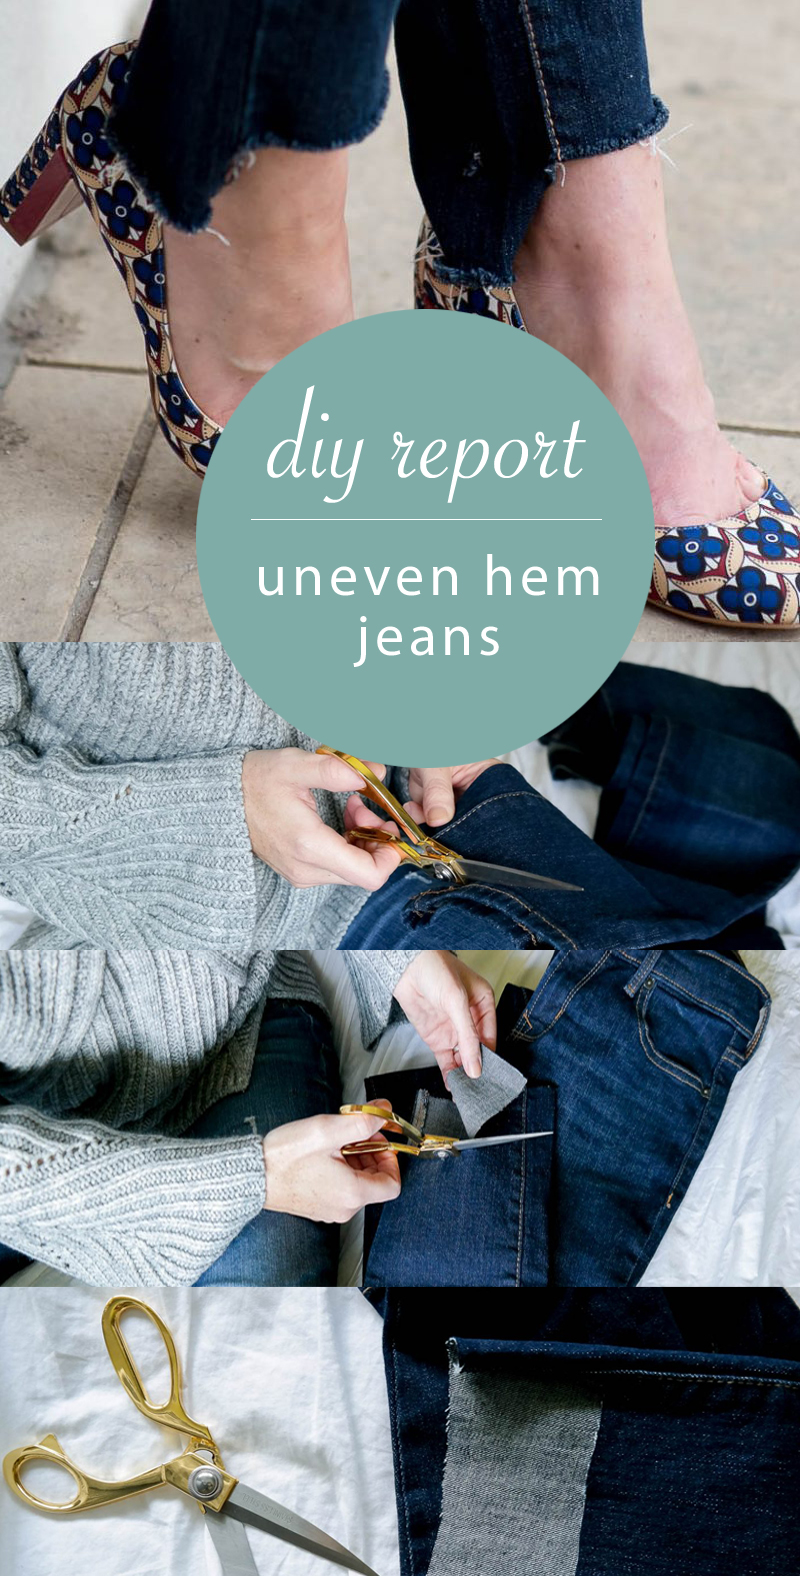 diy uneven hem jeans report